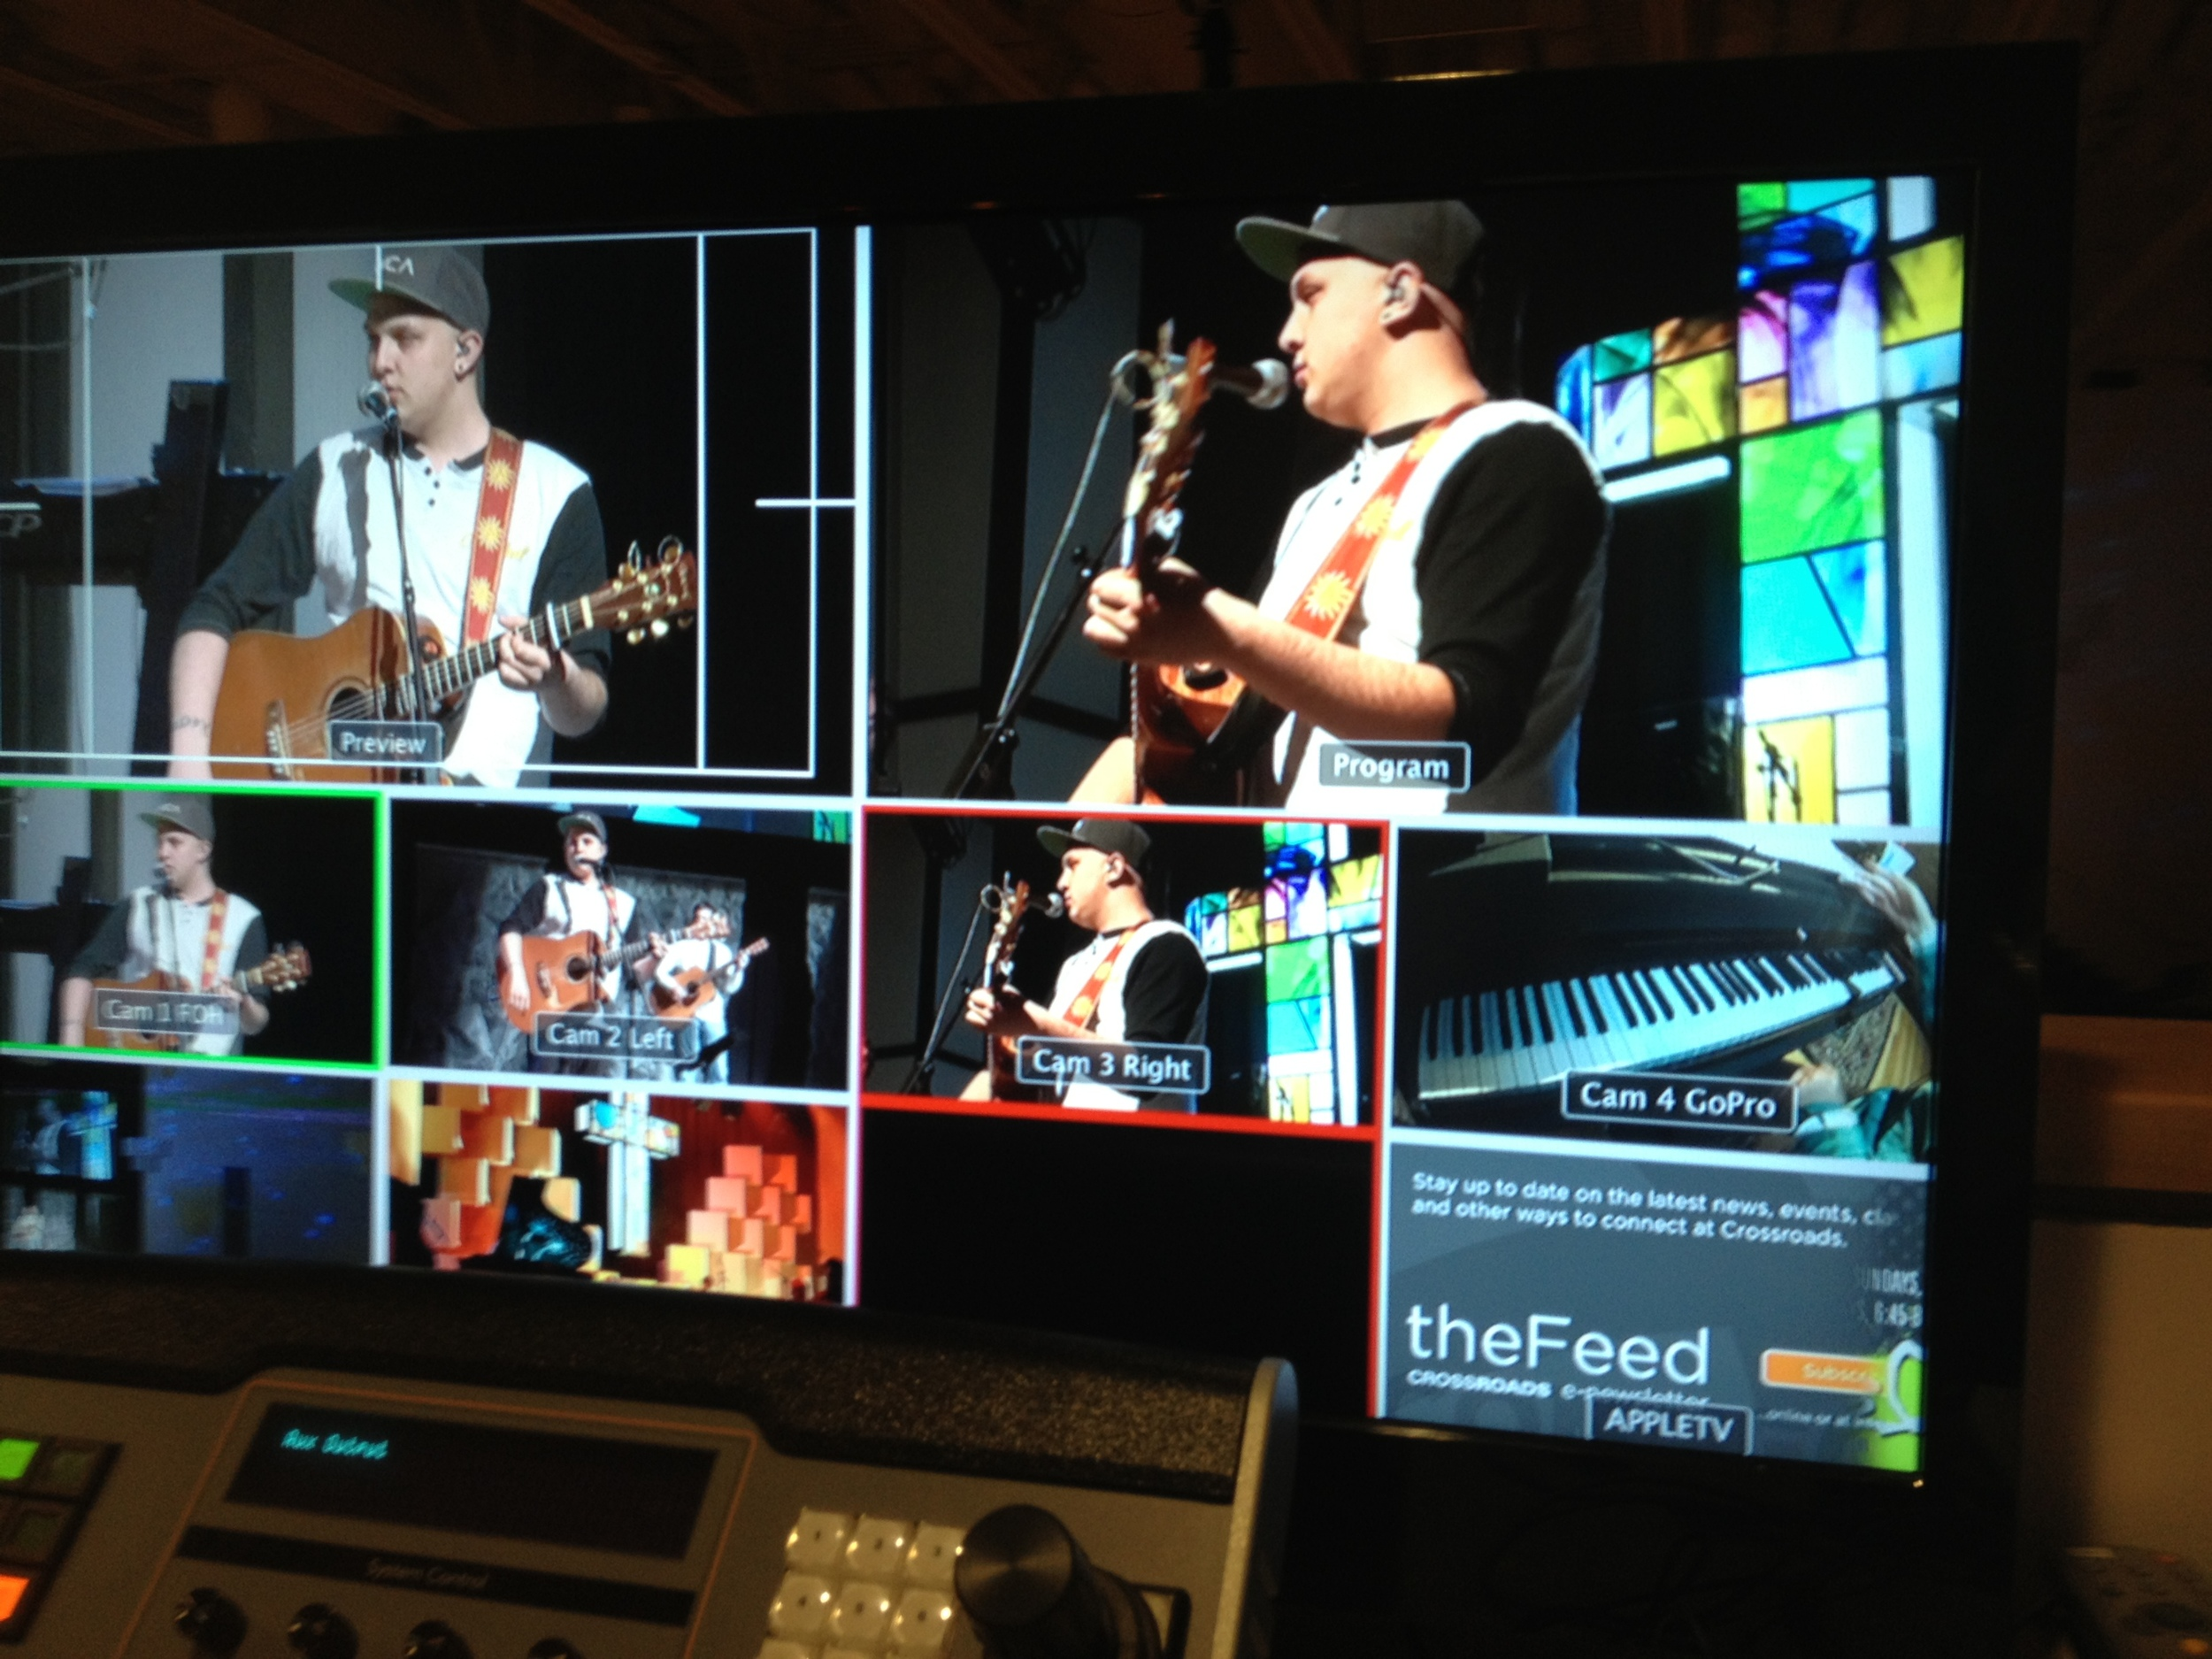 A sneaky pic from the video switcher while the band is rehearsing. I'm hanging with the tech crew!